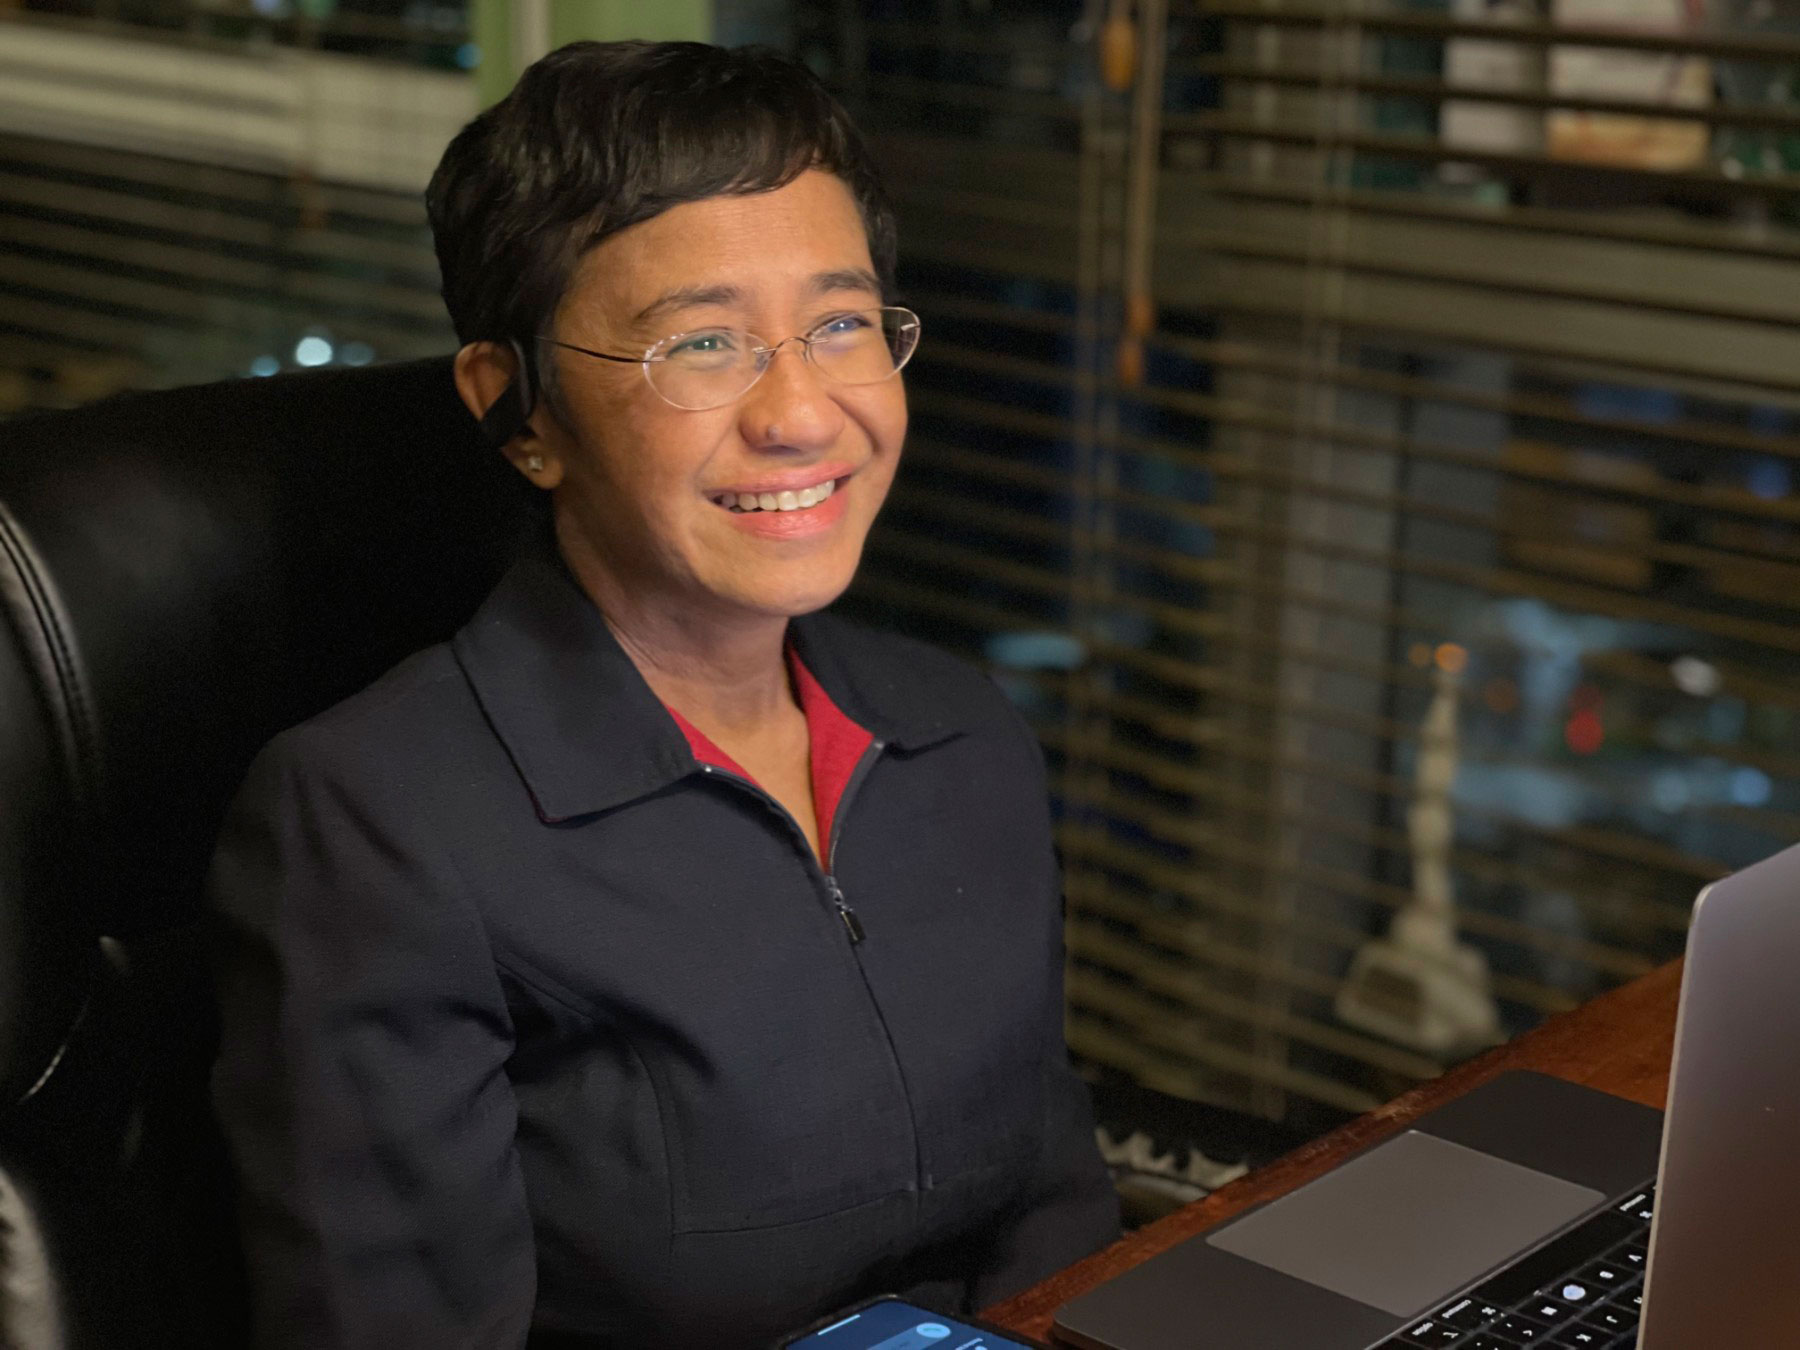 In this photo provided by Rappler, CEO and Executive Editor Maria Ressa reacts after hearing of her winning the Nobel Peace Prize inside her home in Metro Manila, Philippines on October 8, 2021.